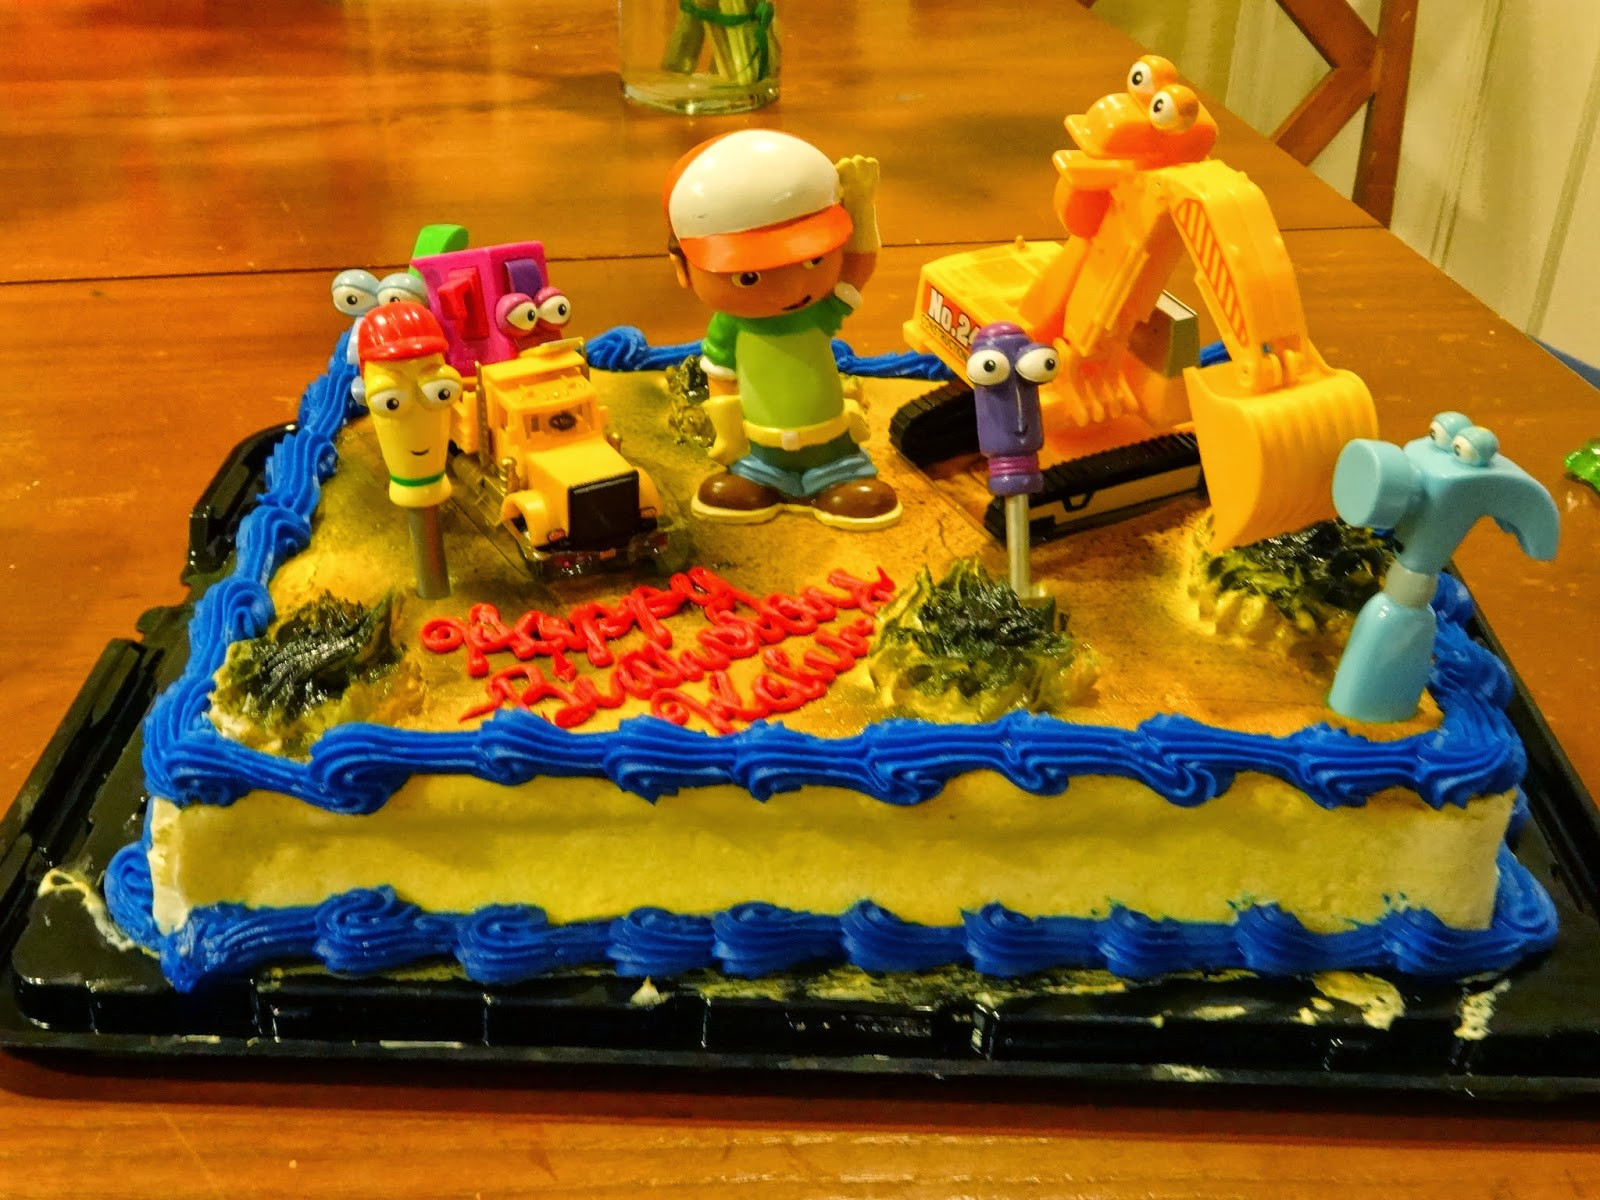 Krogers Birthday Cakes  The Best Krogers Birthday Cakes – Home Family Style and